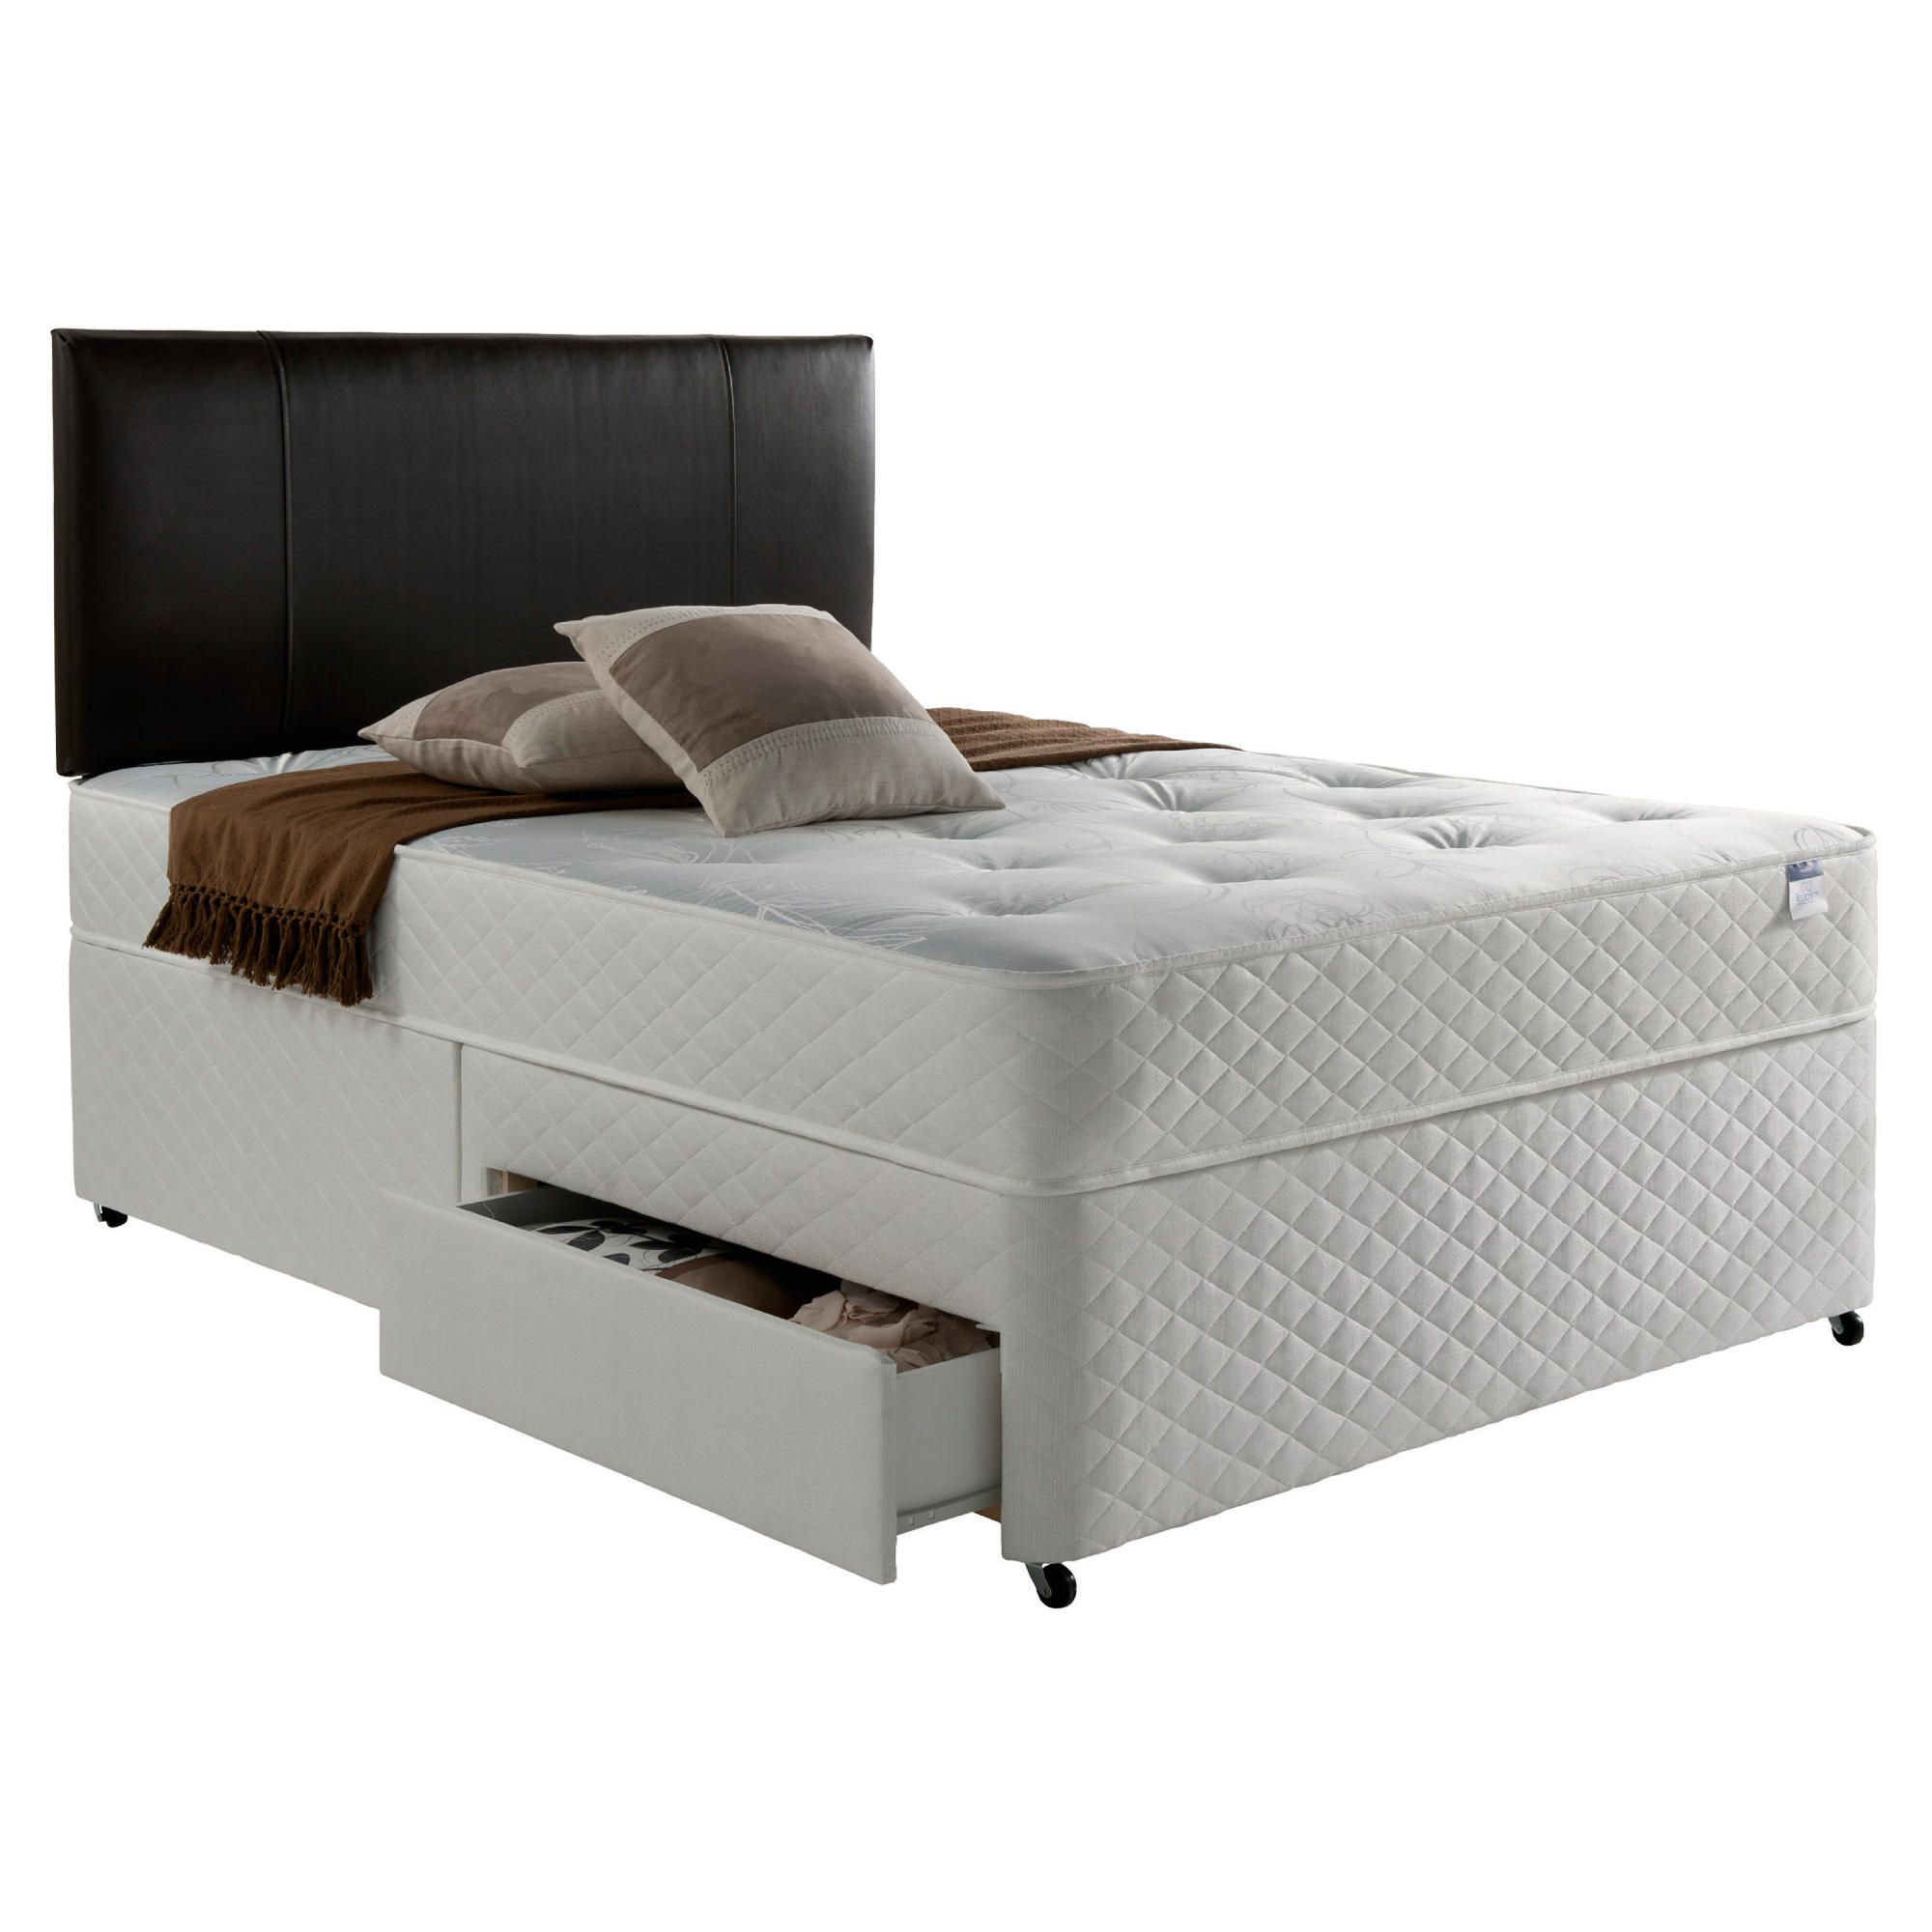 Silentnight Miracoil Comfort Ortho Tuft 4 Drawer King Size Divan at Tesco Direct